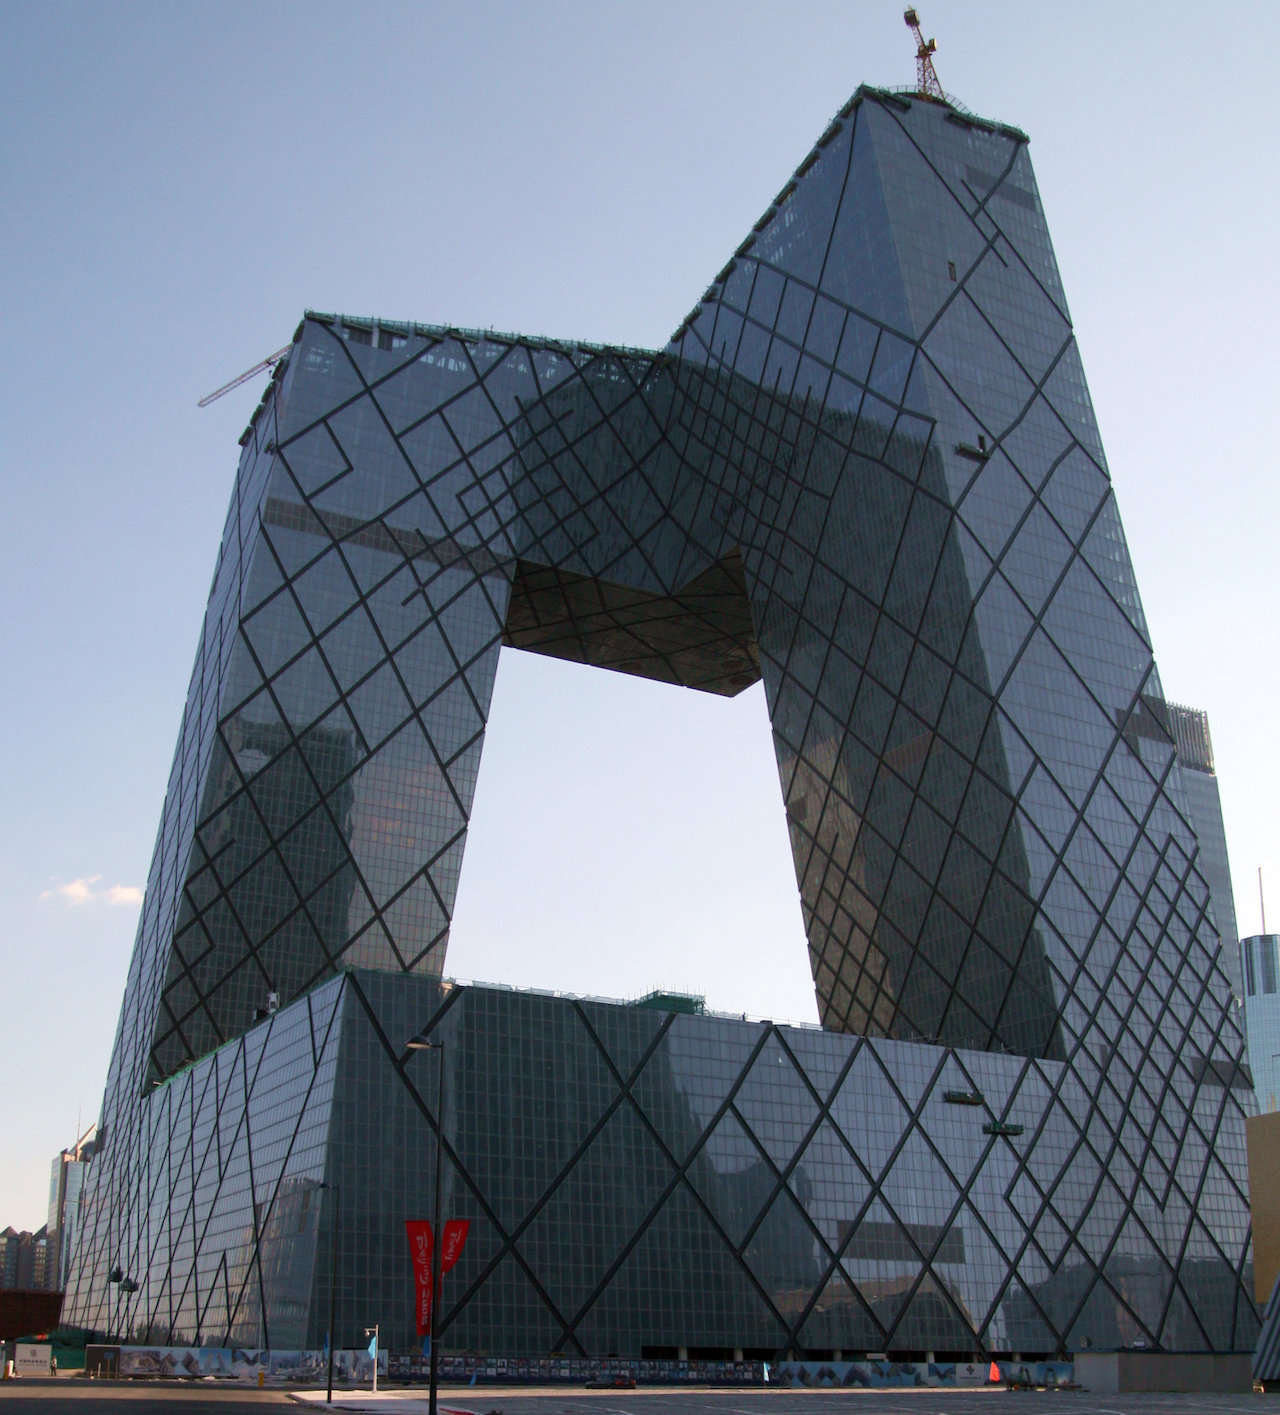 CCTV Headquarters built by Rem Koolhaas and Ole Scheeren (image via Wikipedia)